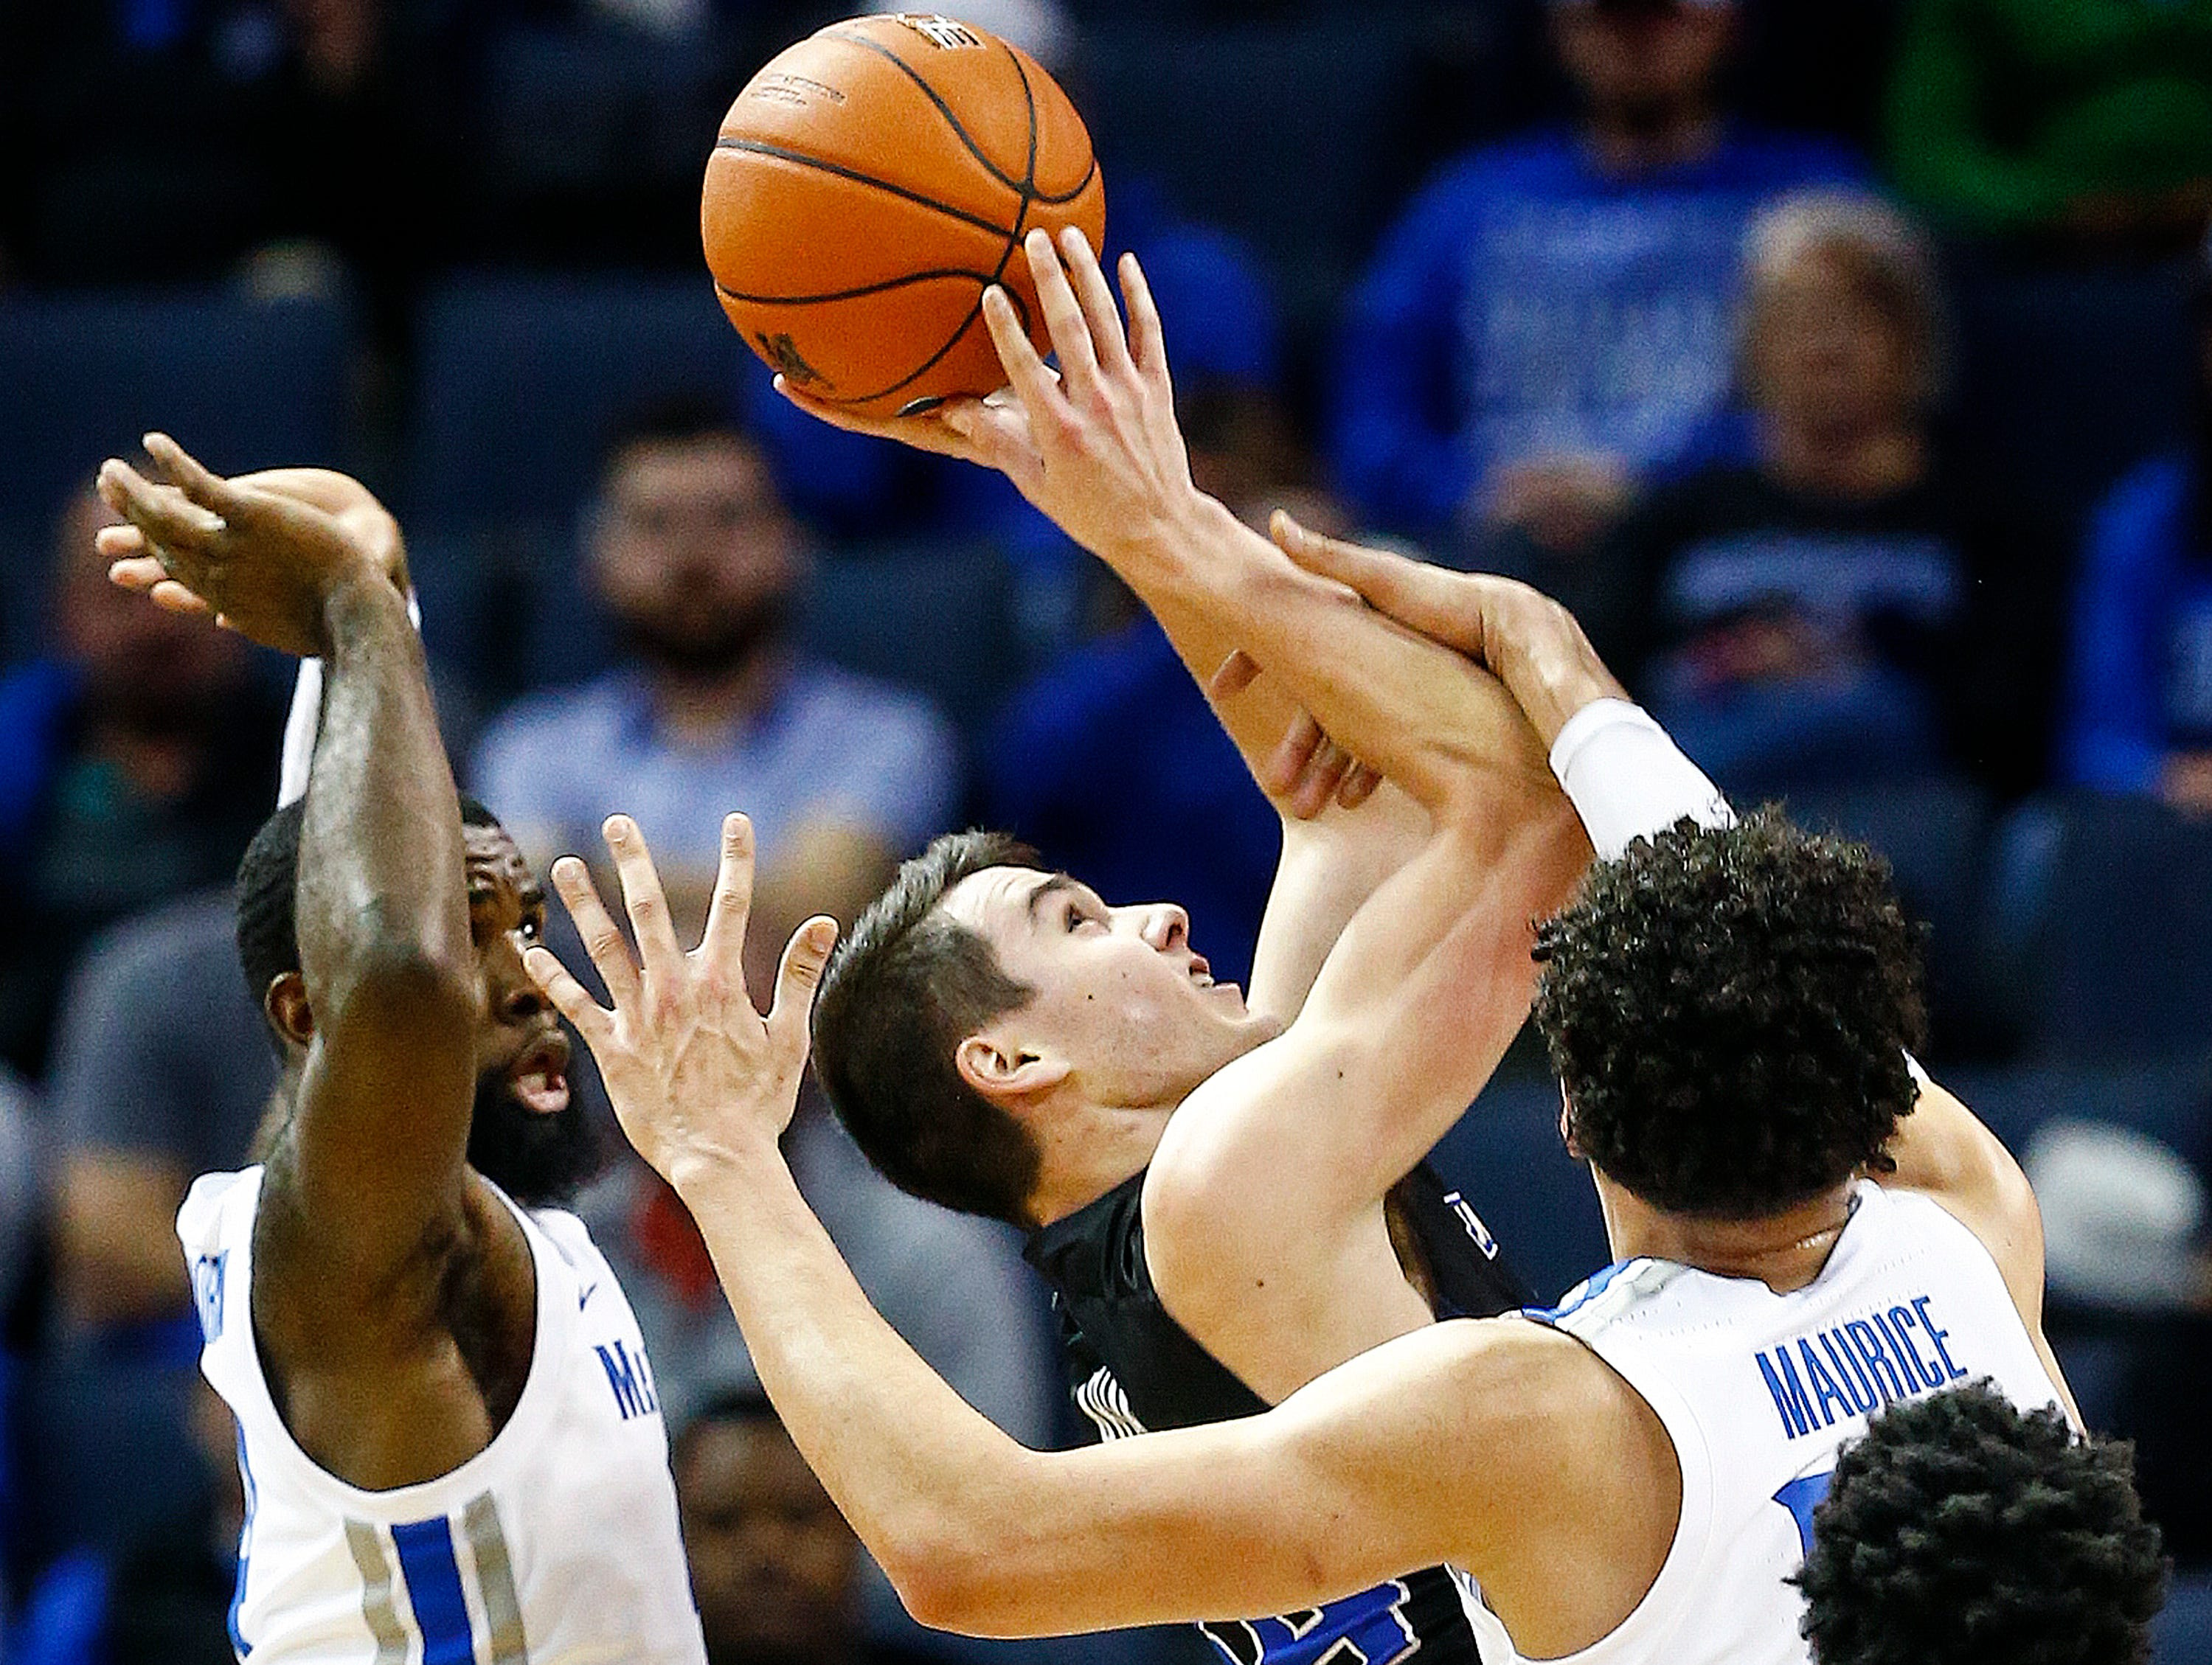 Memphis forward Isaiah Maurice (right) defends the shot of South Dakota State guard Owen King (middle) as teammate Raynere Thornton (left) helps on the play during action at the FedExFourm., Tuesday, December 4, 2018.